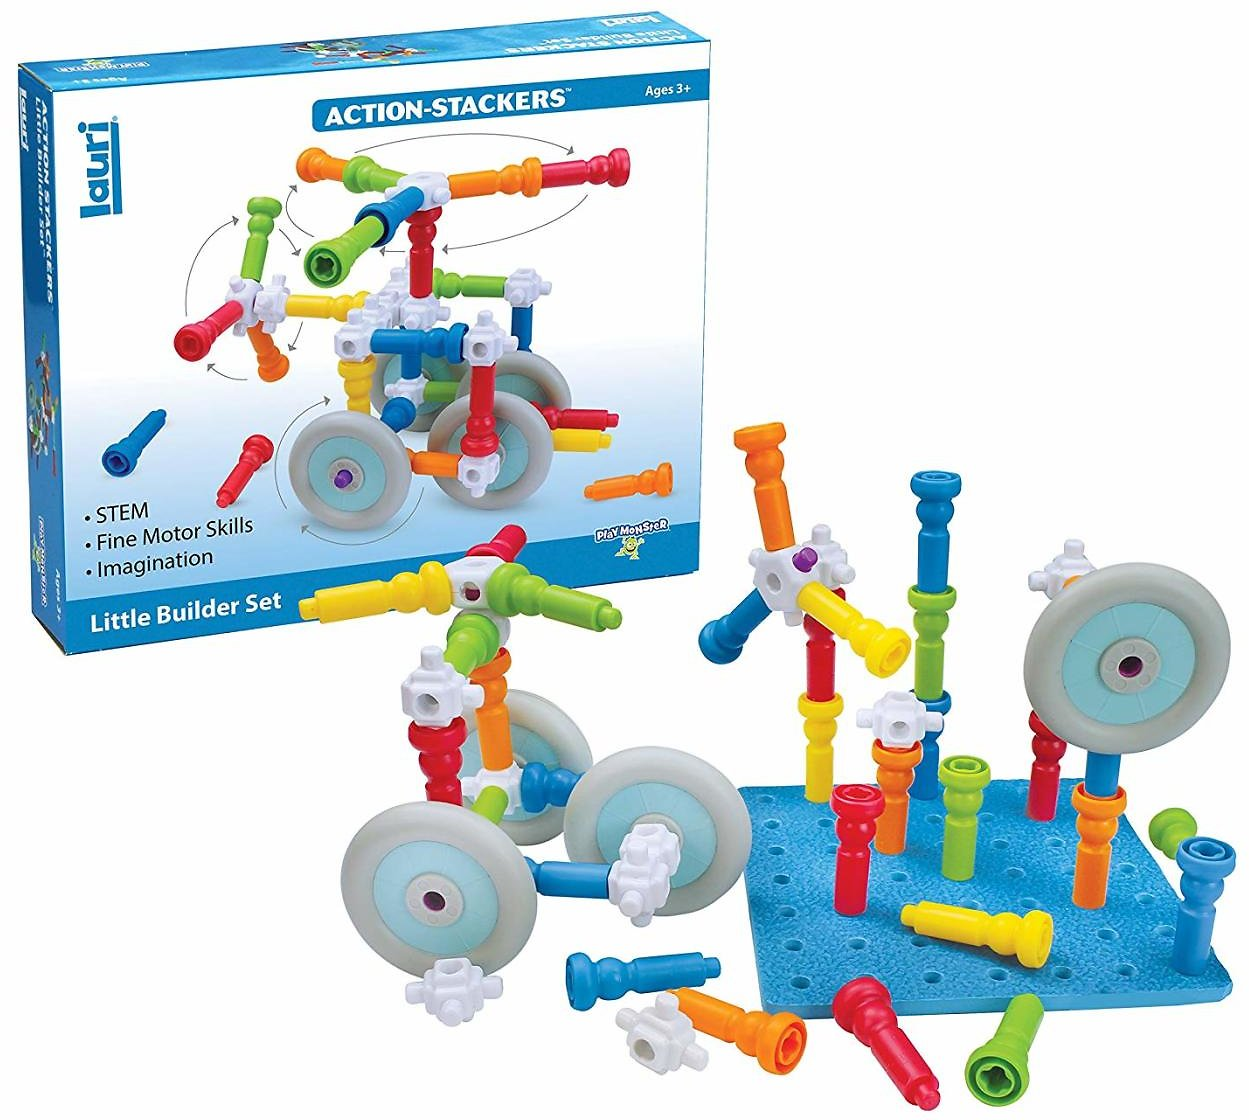 PlayMonster Lauri Action-Stackers Build Set